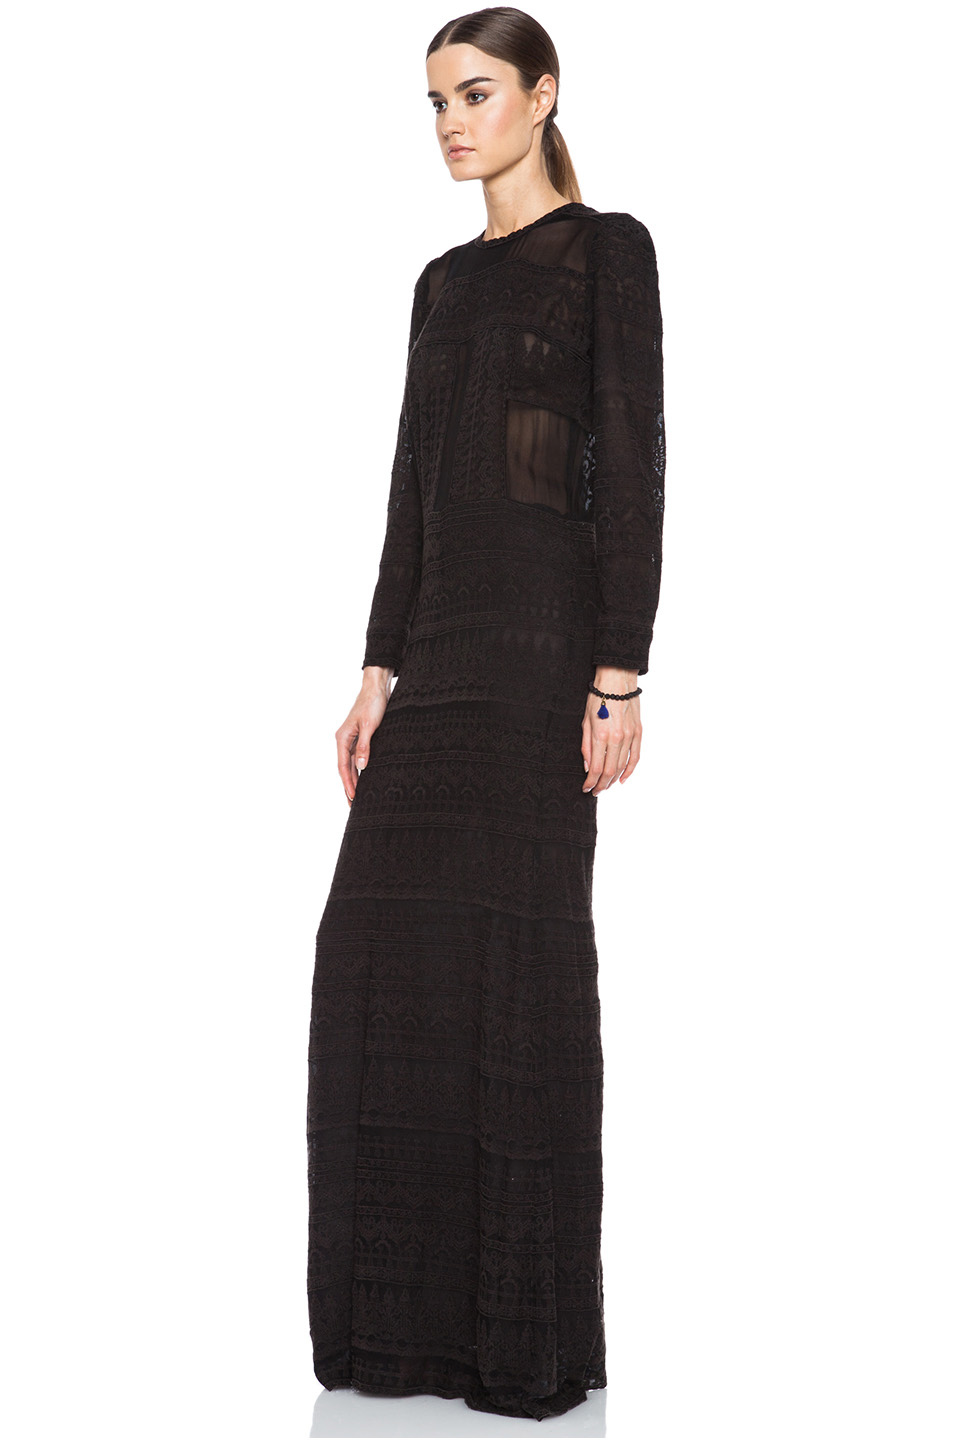 Isabel Marant|Talma Embroidered Viscose Dress in Black